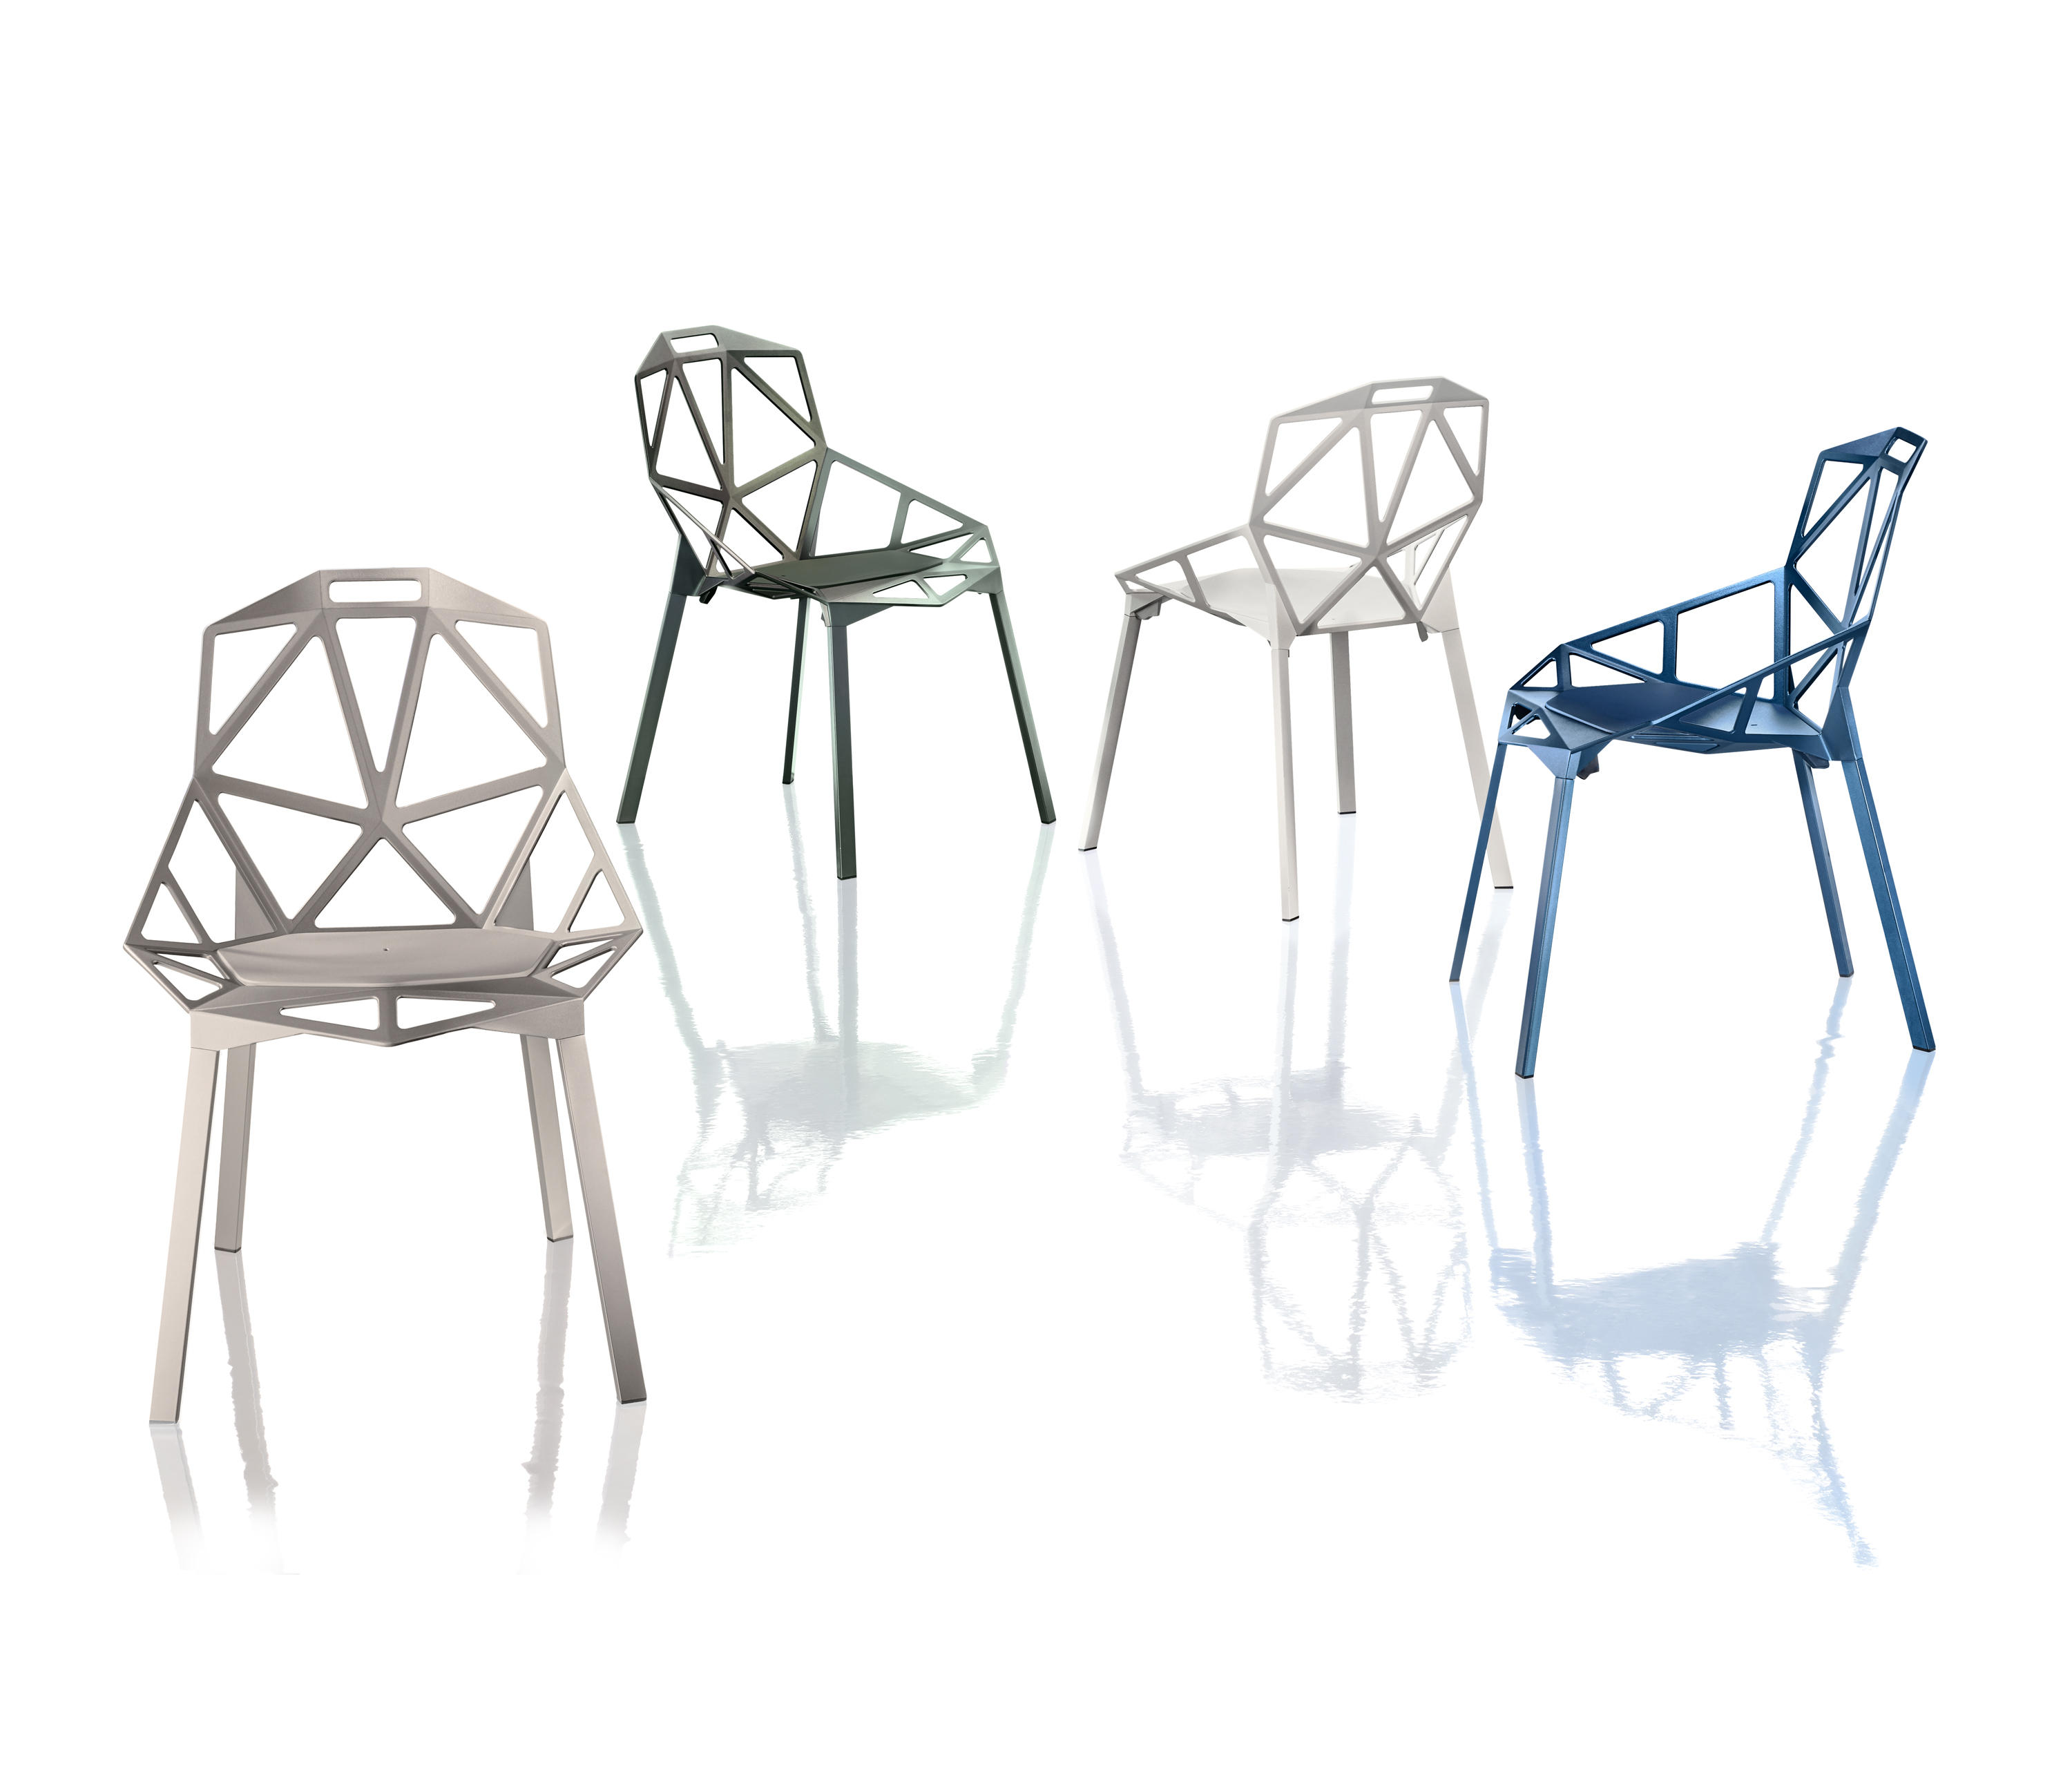 Chair_One by Magis | Chairs  sc 1 st  Architonic & CHAIR_ONE - Chairs from Magis | Architonic